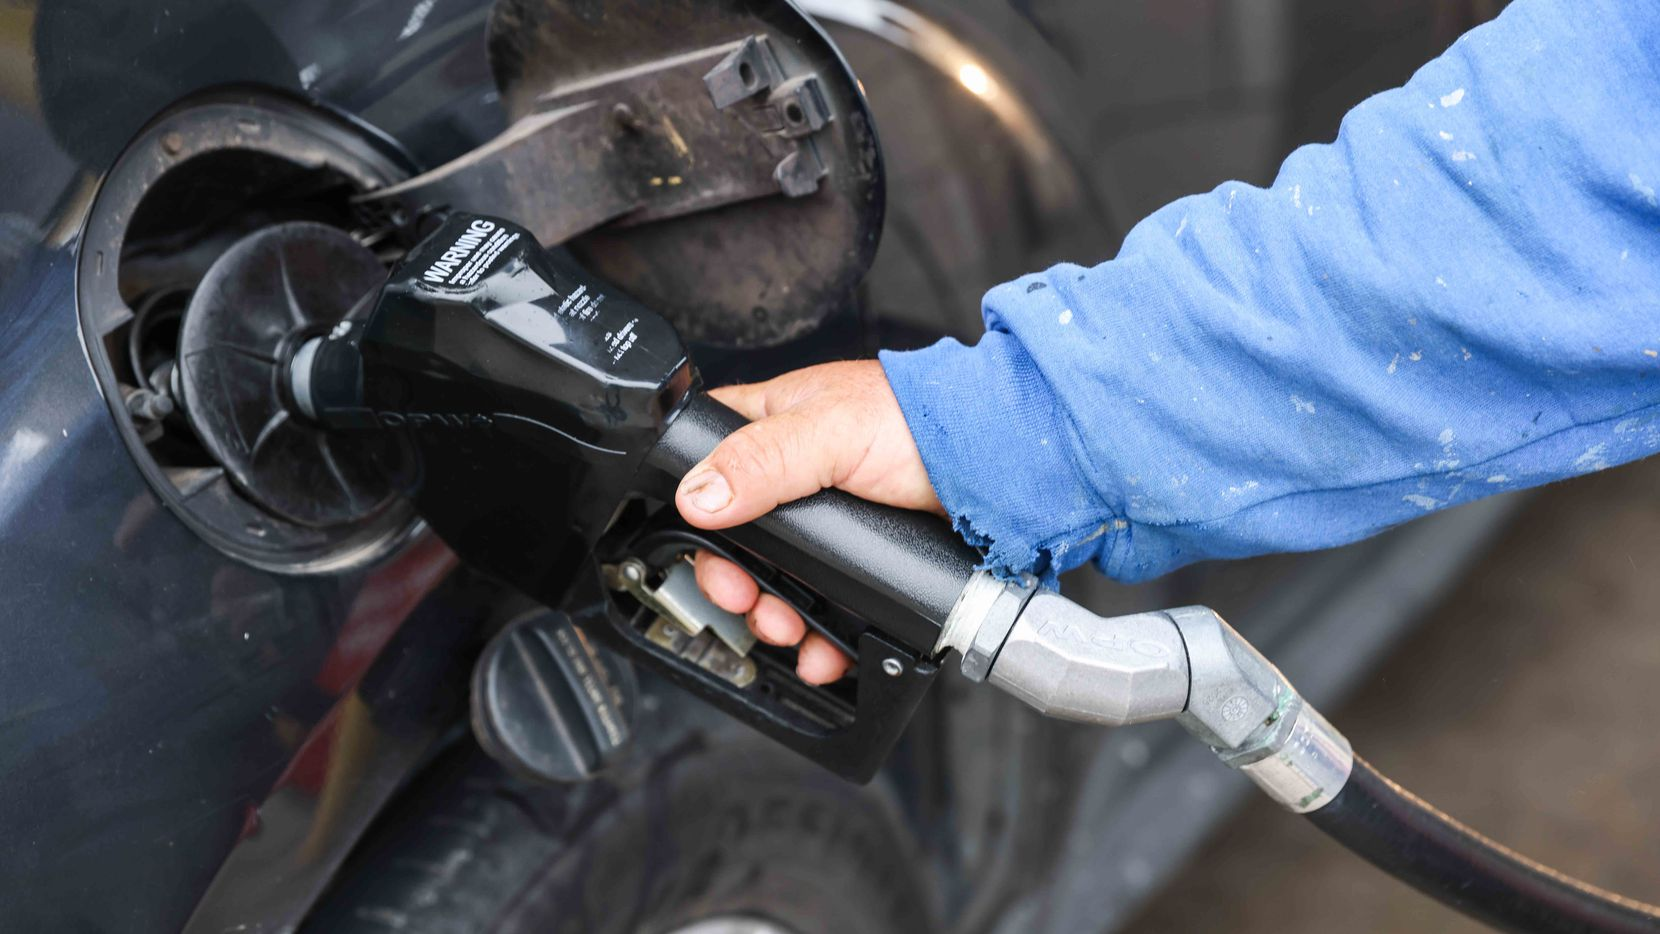 Ignacio Vazquez put gas in his vehicle at the Sam's Club gas station on Retail Road in Dallas in May.